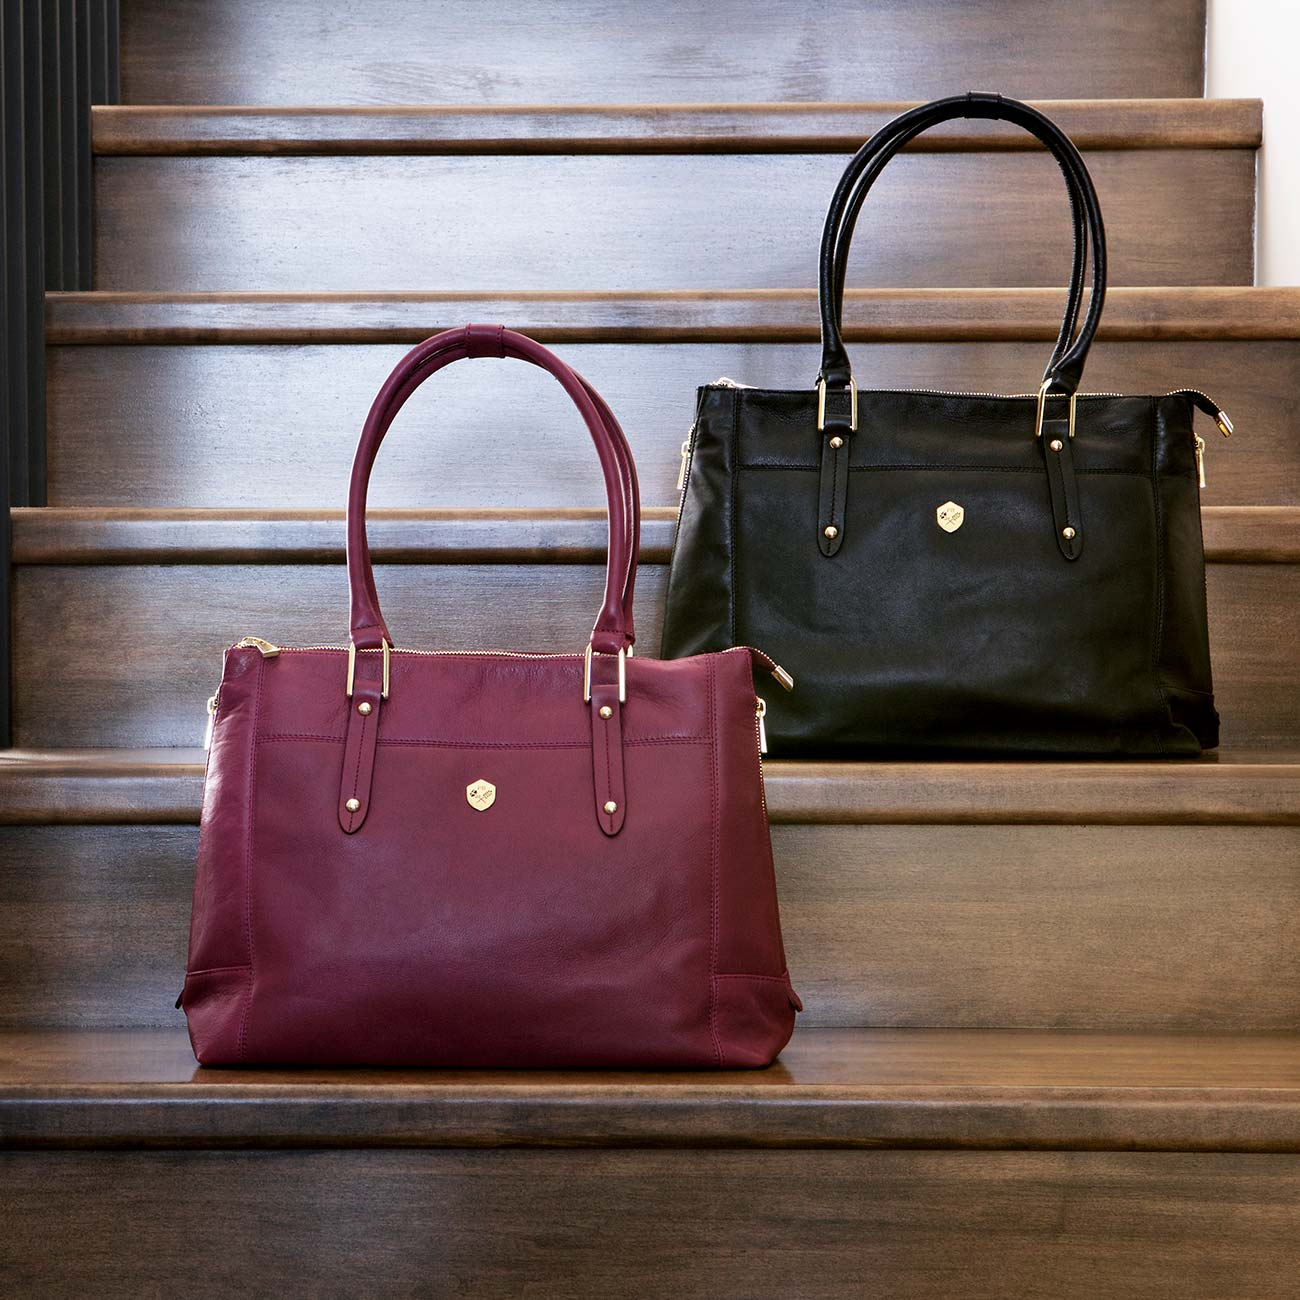 The Perfect Handbag in Burgundy and Black - Poppy Barley